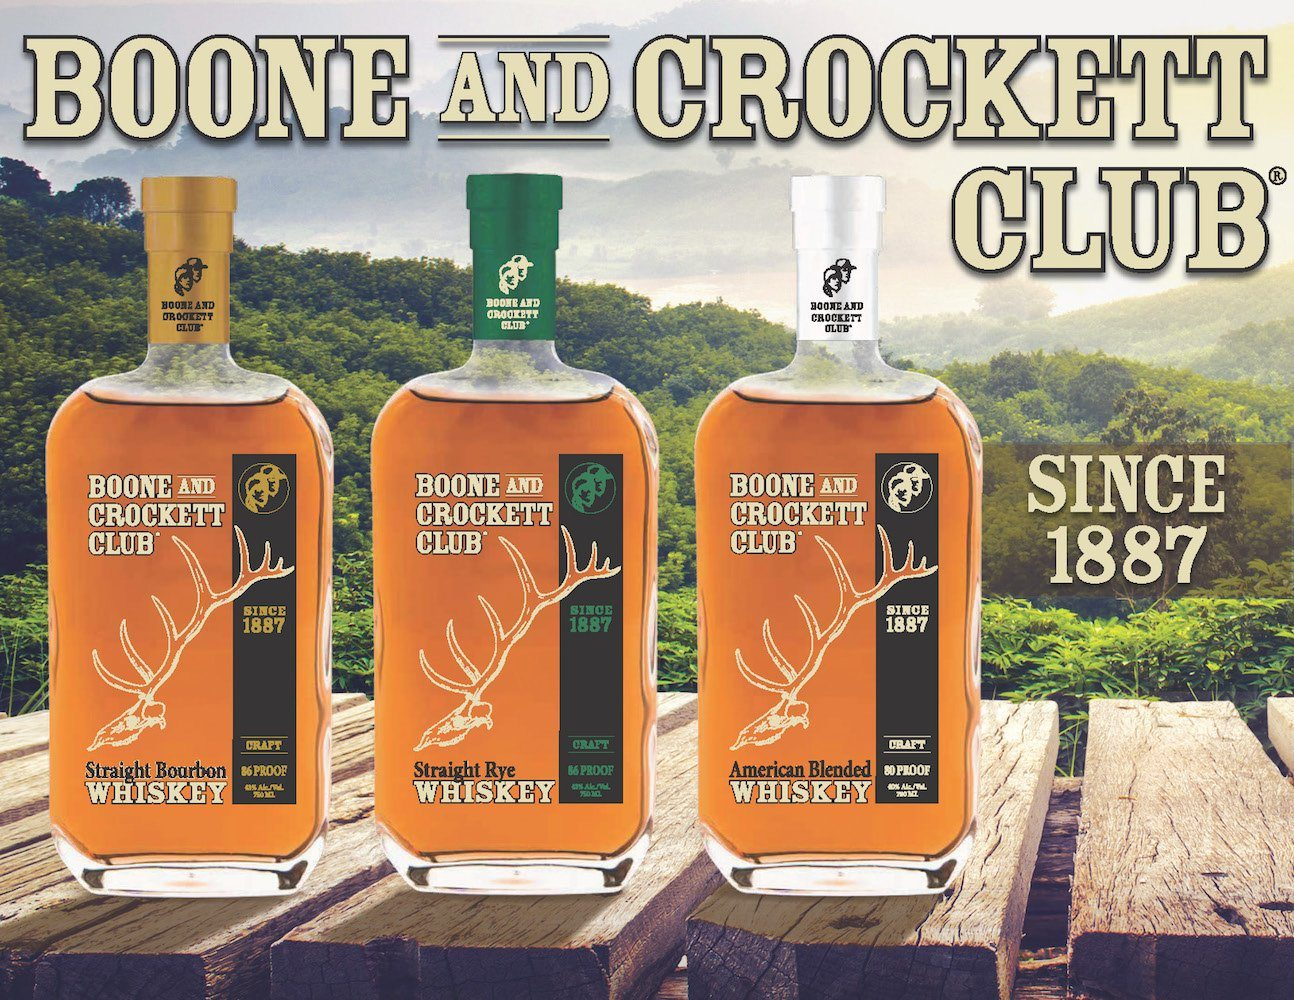 EXCLUSIVE OFFERS FOR BOONE AND CROCKET WHISKEY REWARDS MEMBERS